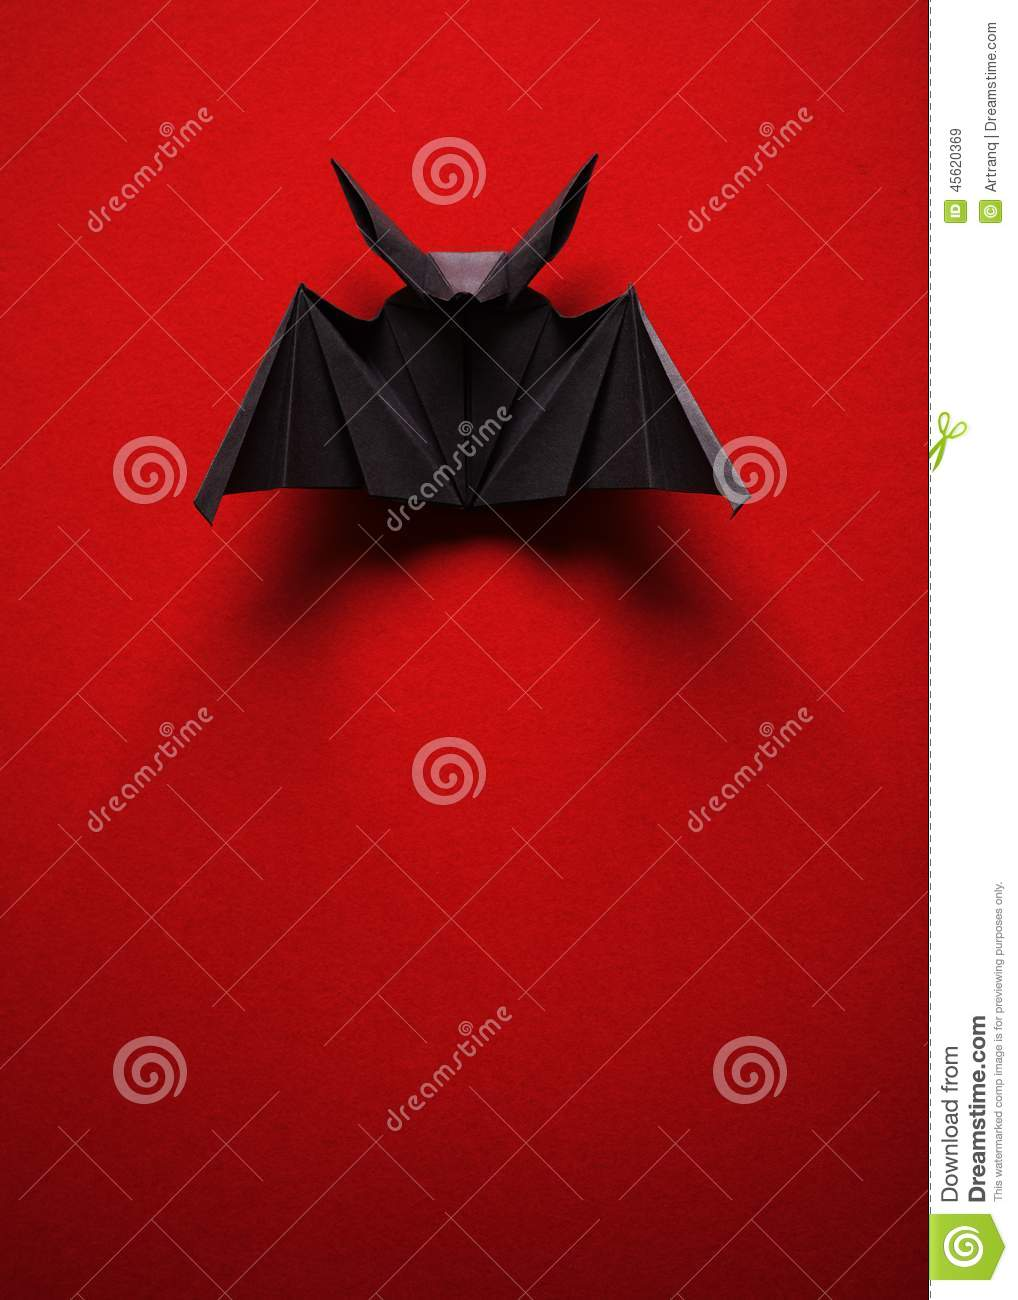 Origami Bat On A Red Background Stock Image